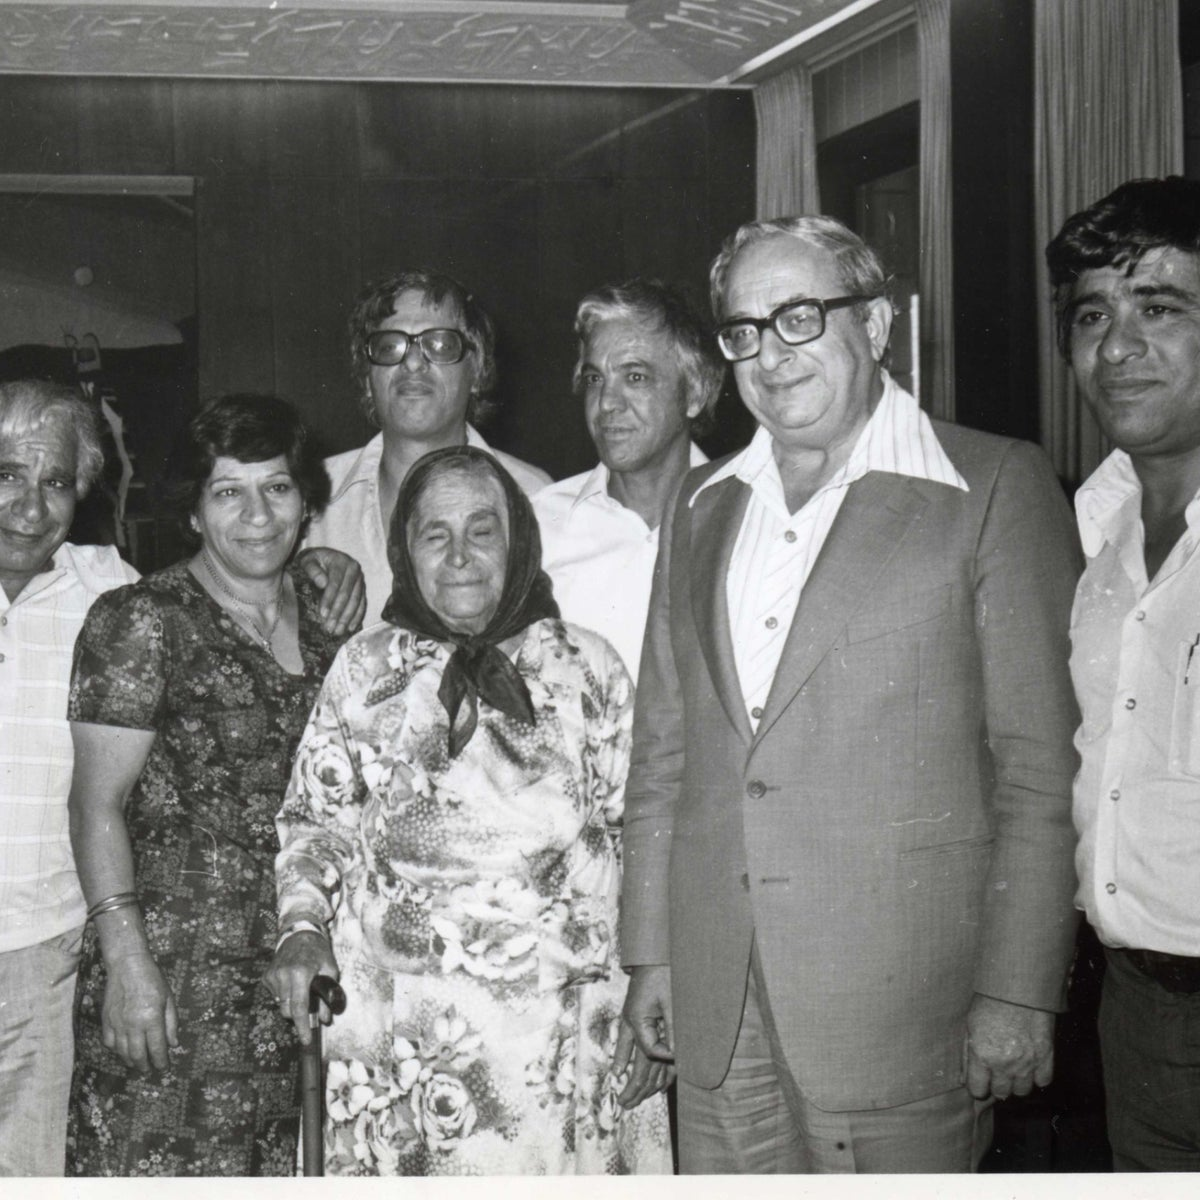 """Members of the Banai family with Israel's President Yitzhak Navon, second from right. This is one of the photos on display at the Tower of David exhibition """"Banai – A Musical Journey from Persia to Jerusalem,"""" in Jerusalem, July 2020"""